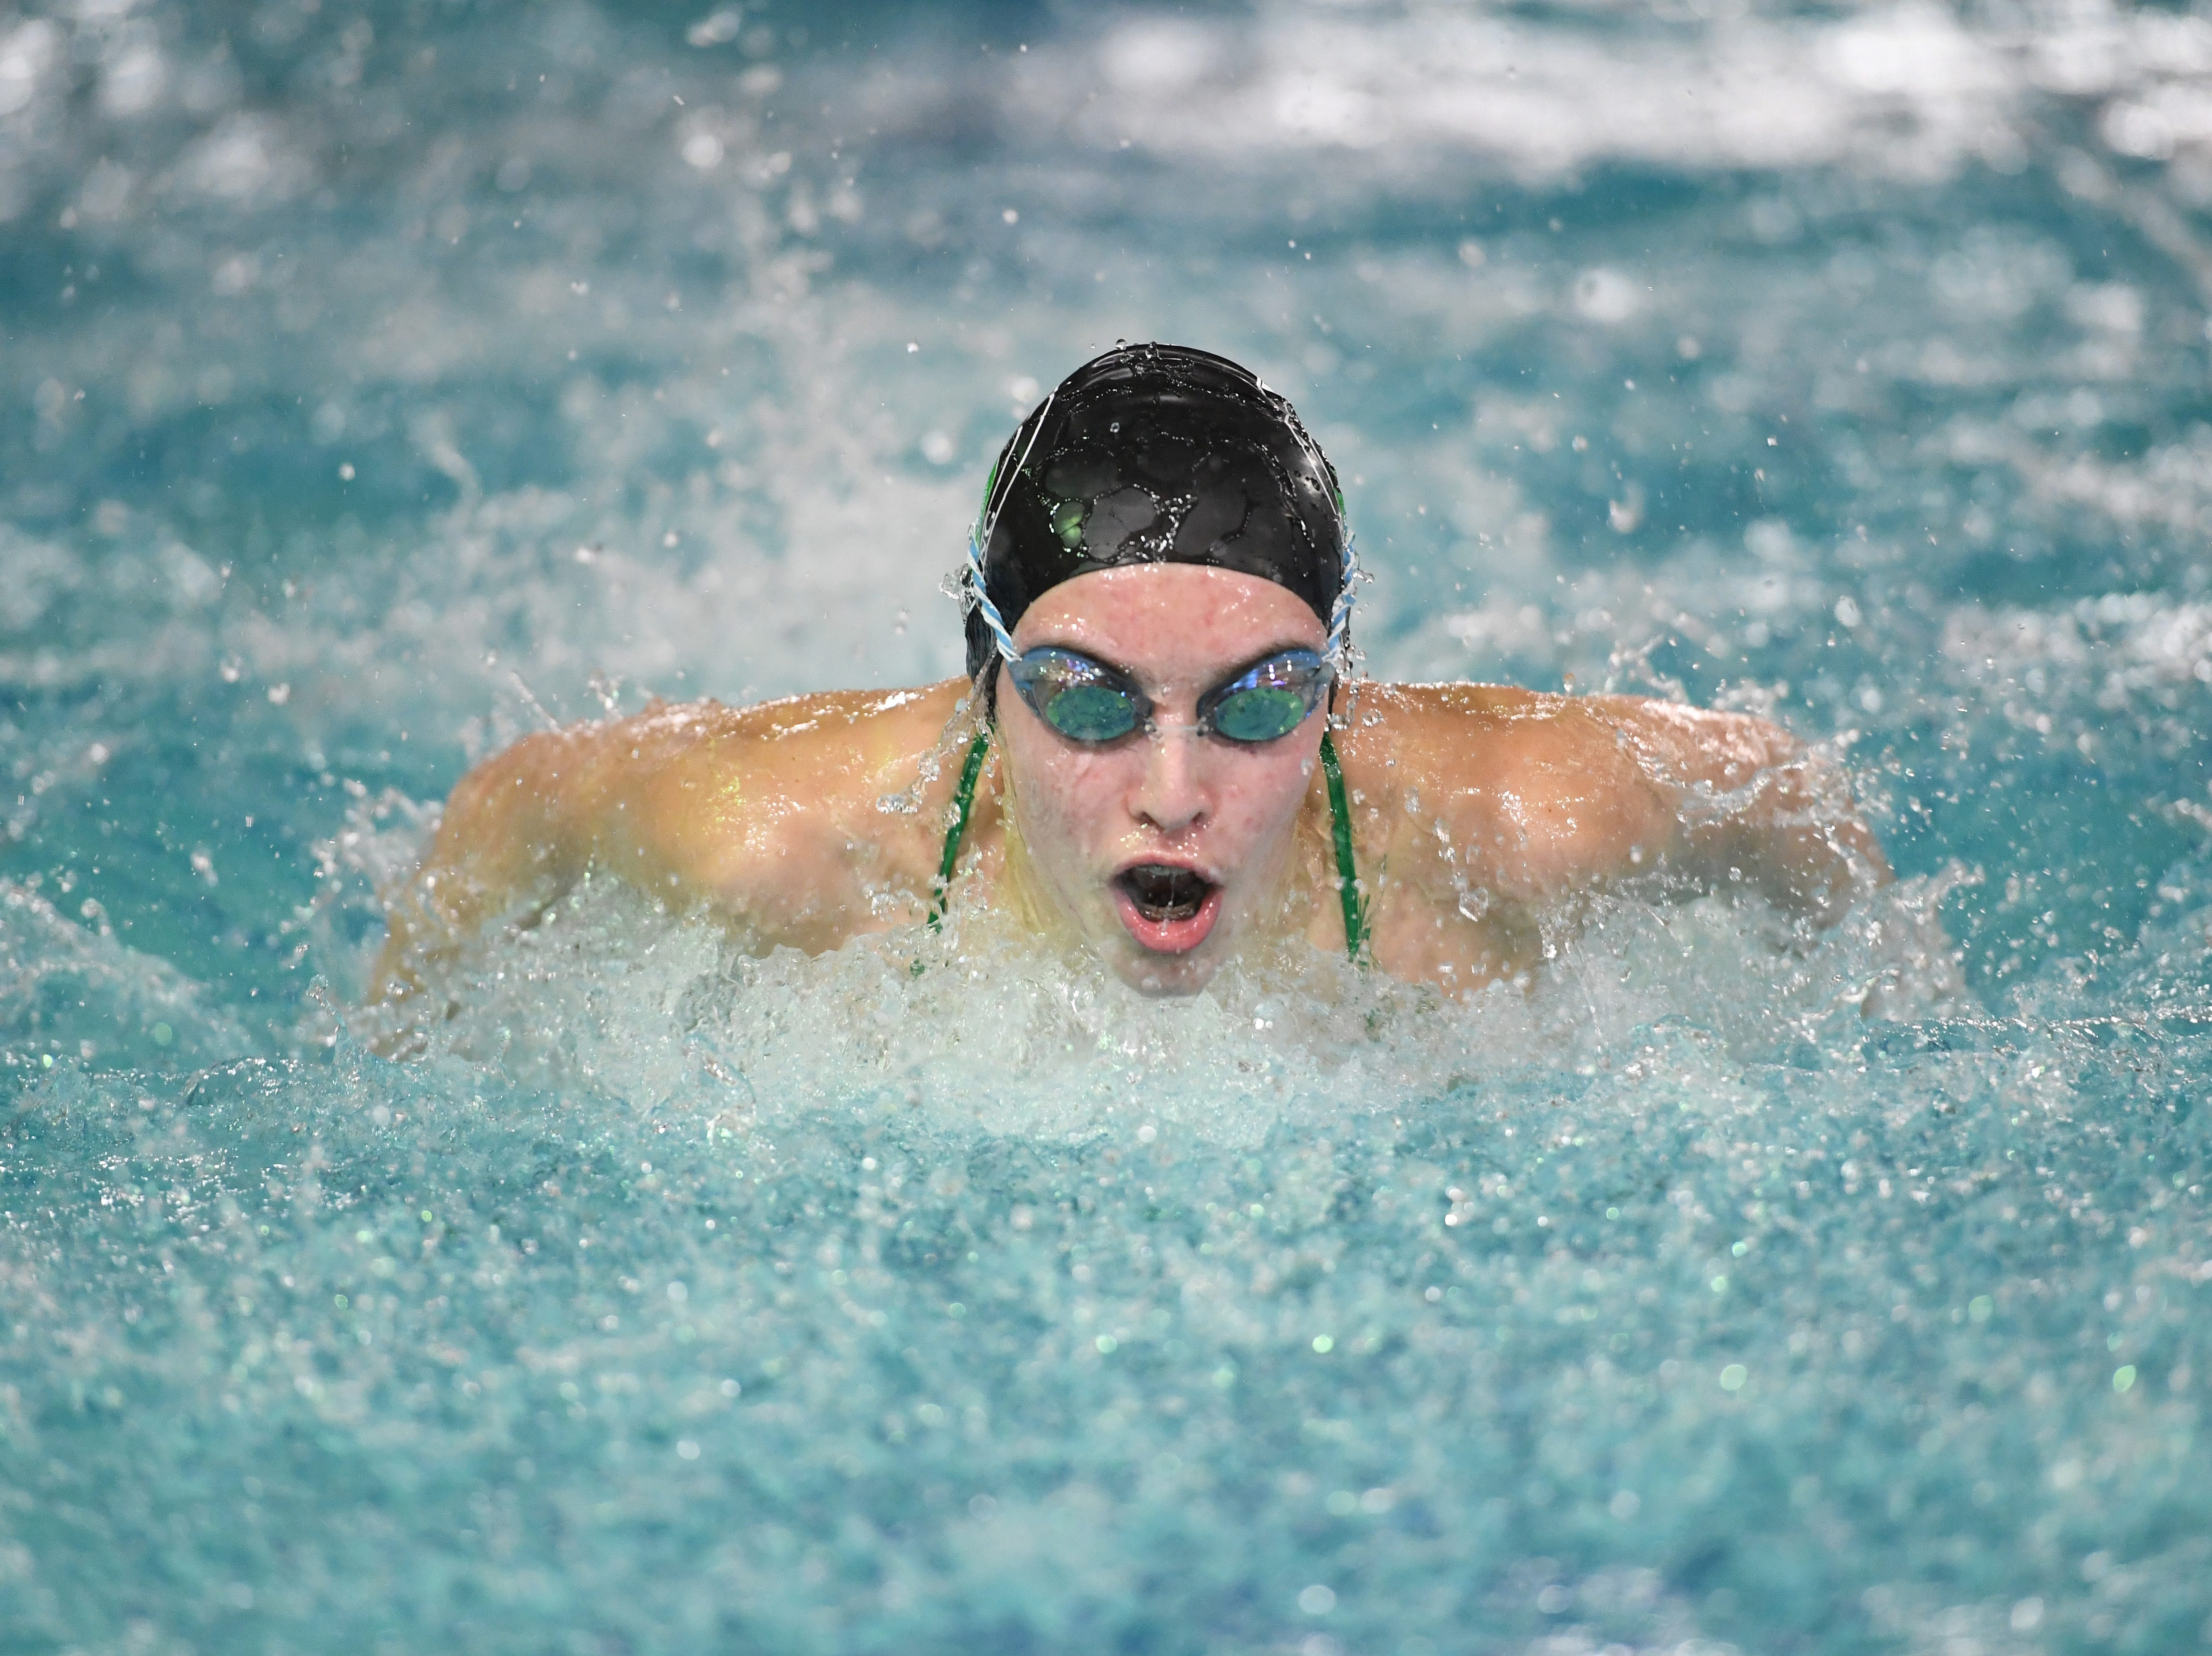 NJSIAA swimming sectional finals: Mountain Lakes vs Kinnelon in North I-C at Passaic County Technical Institute on Friday, February 15, 2019. Kelsey Thompson, of Kinnelon, in the 100 Fly.